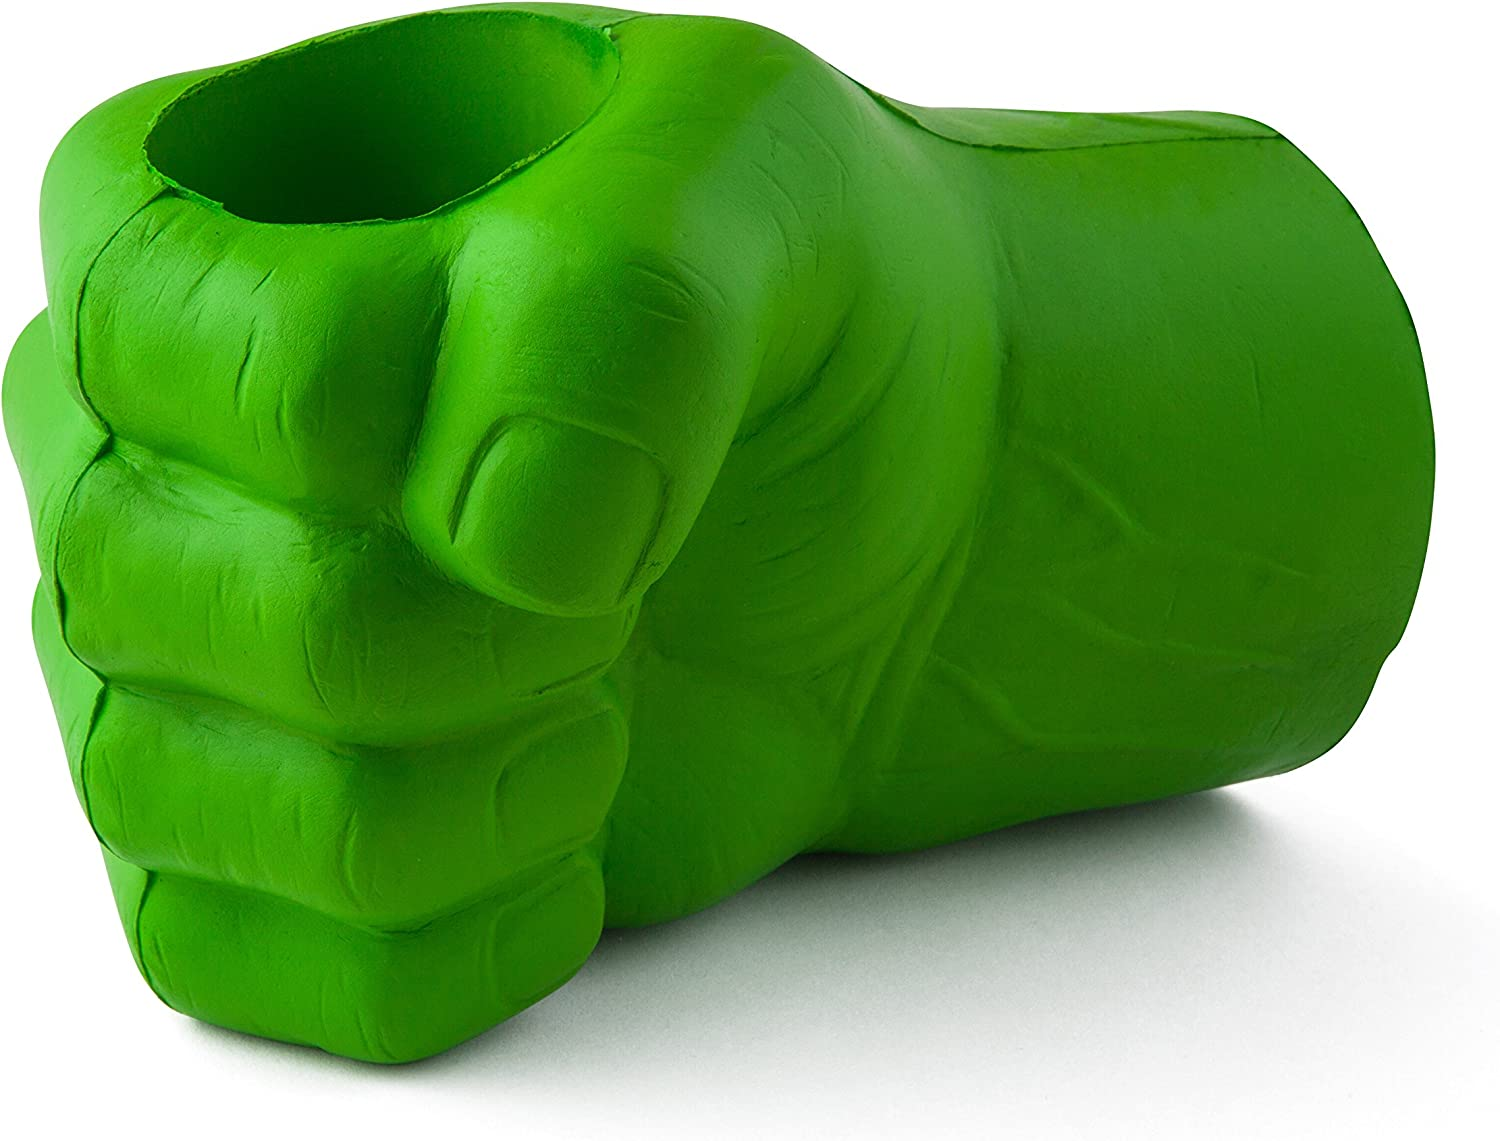 BigMouth Inc The Beast Giant Fist Drink Kooler, Green, Holds Can or Bottle, Keeps Drink Cold, Easy to Clean